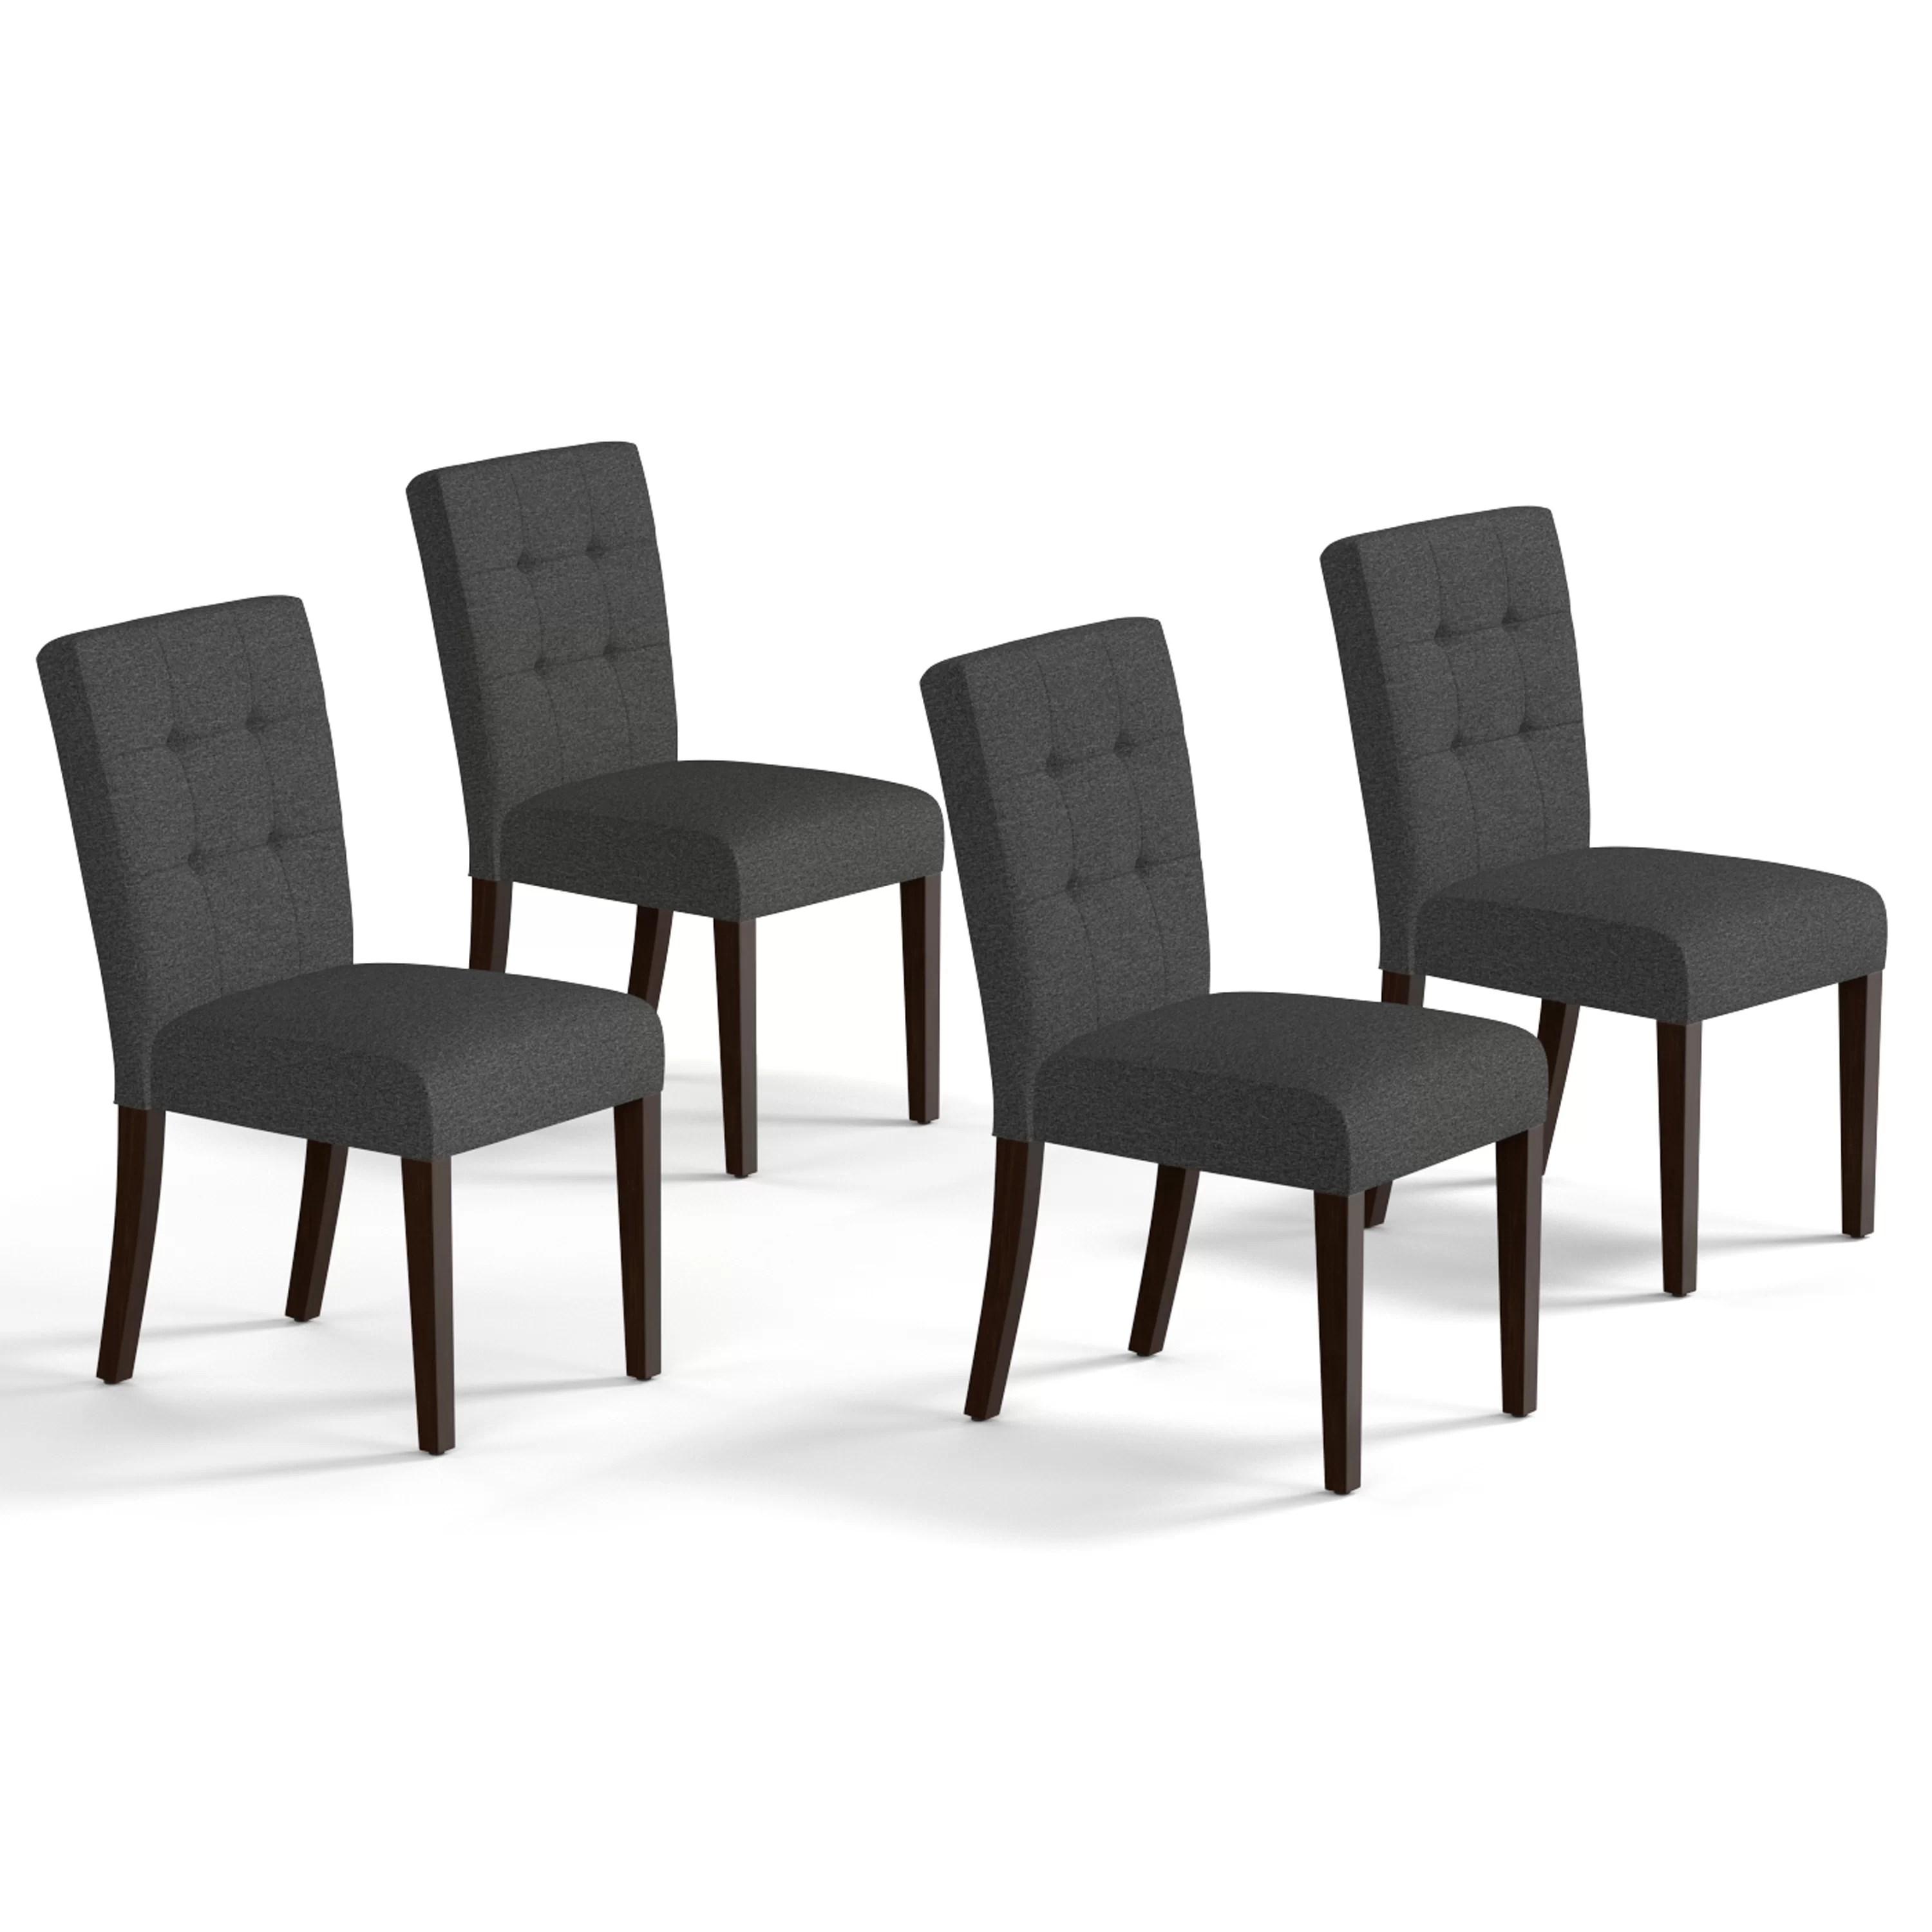 Studio Chairs Brayden Studio Isidora Parsons Chair And Reviews Wayfair Ca